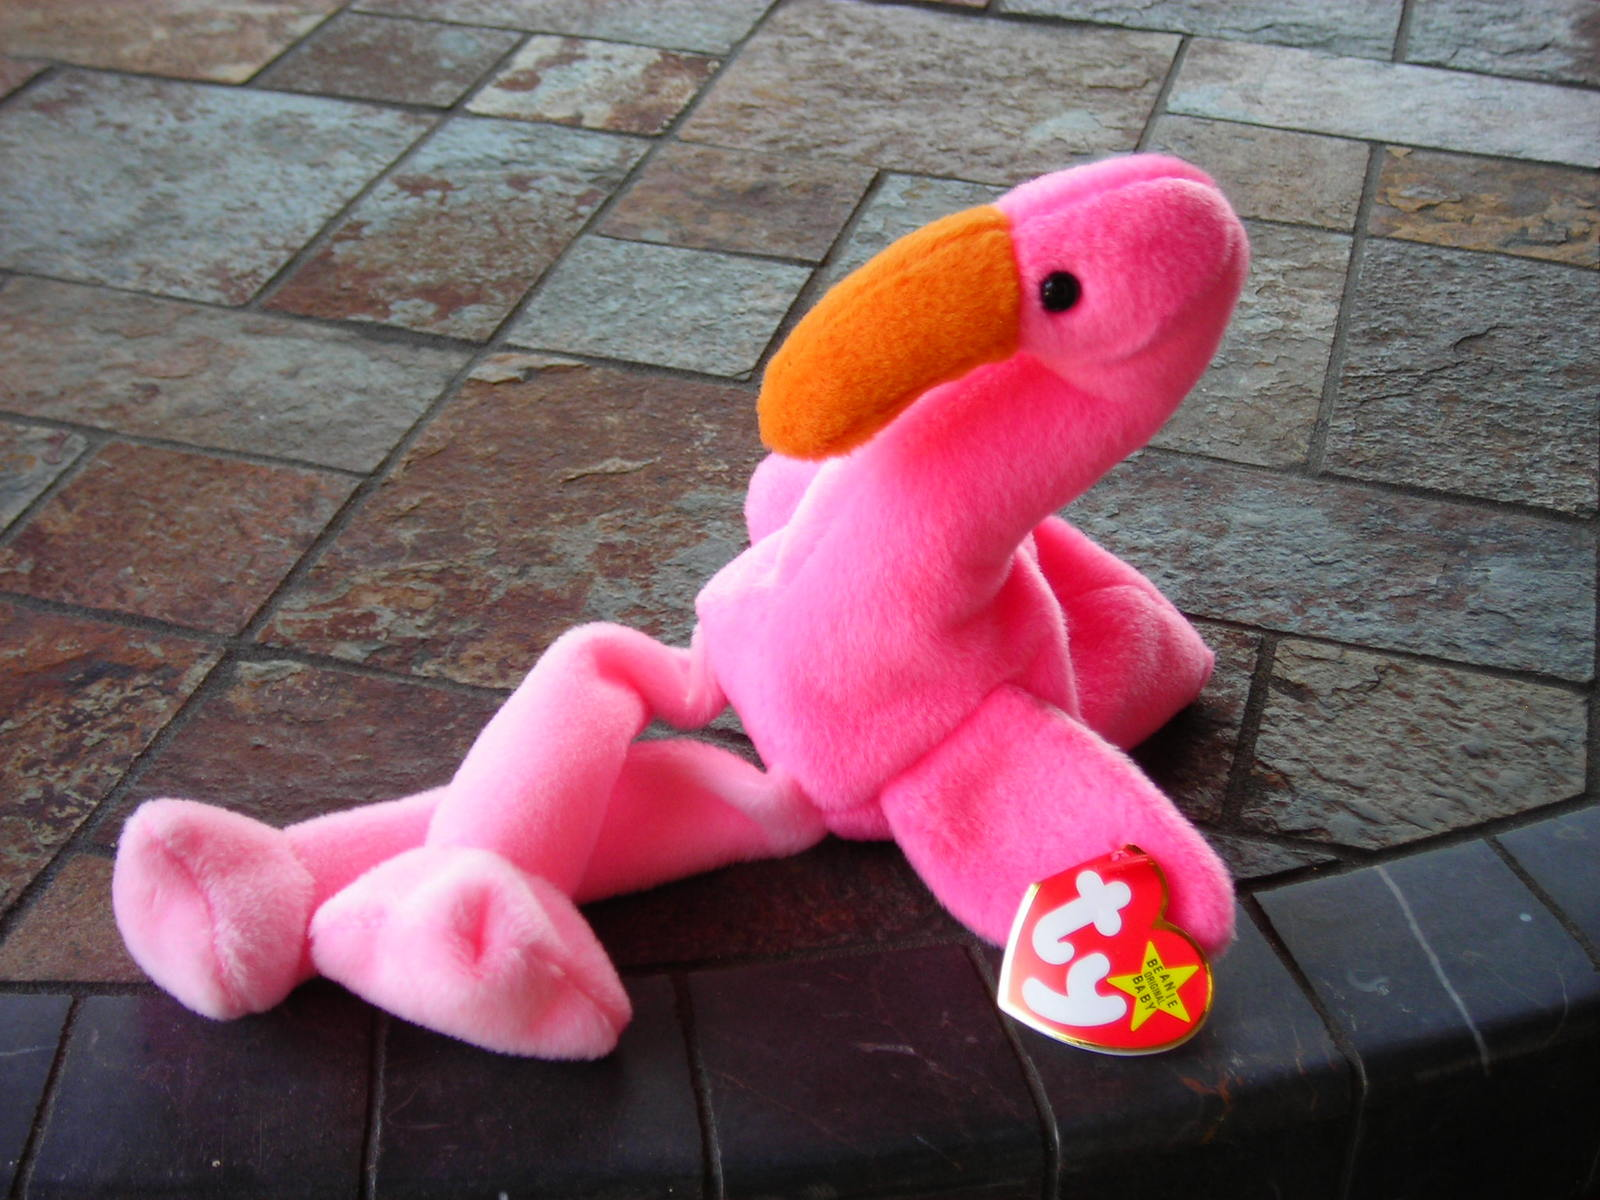 Pink Flamingo, Beanie Baby Pinky, Ty Inc, Beanie Babies Collectible, Pink Decor, Gift for Girl, Girls Bedroom Decor, Style TheresasSewingShop. 5 out of 5 stars () $ Favorite Add to See similar items + More like.